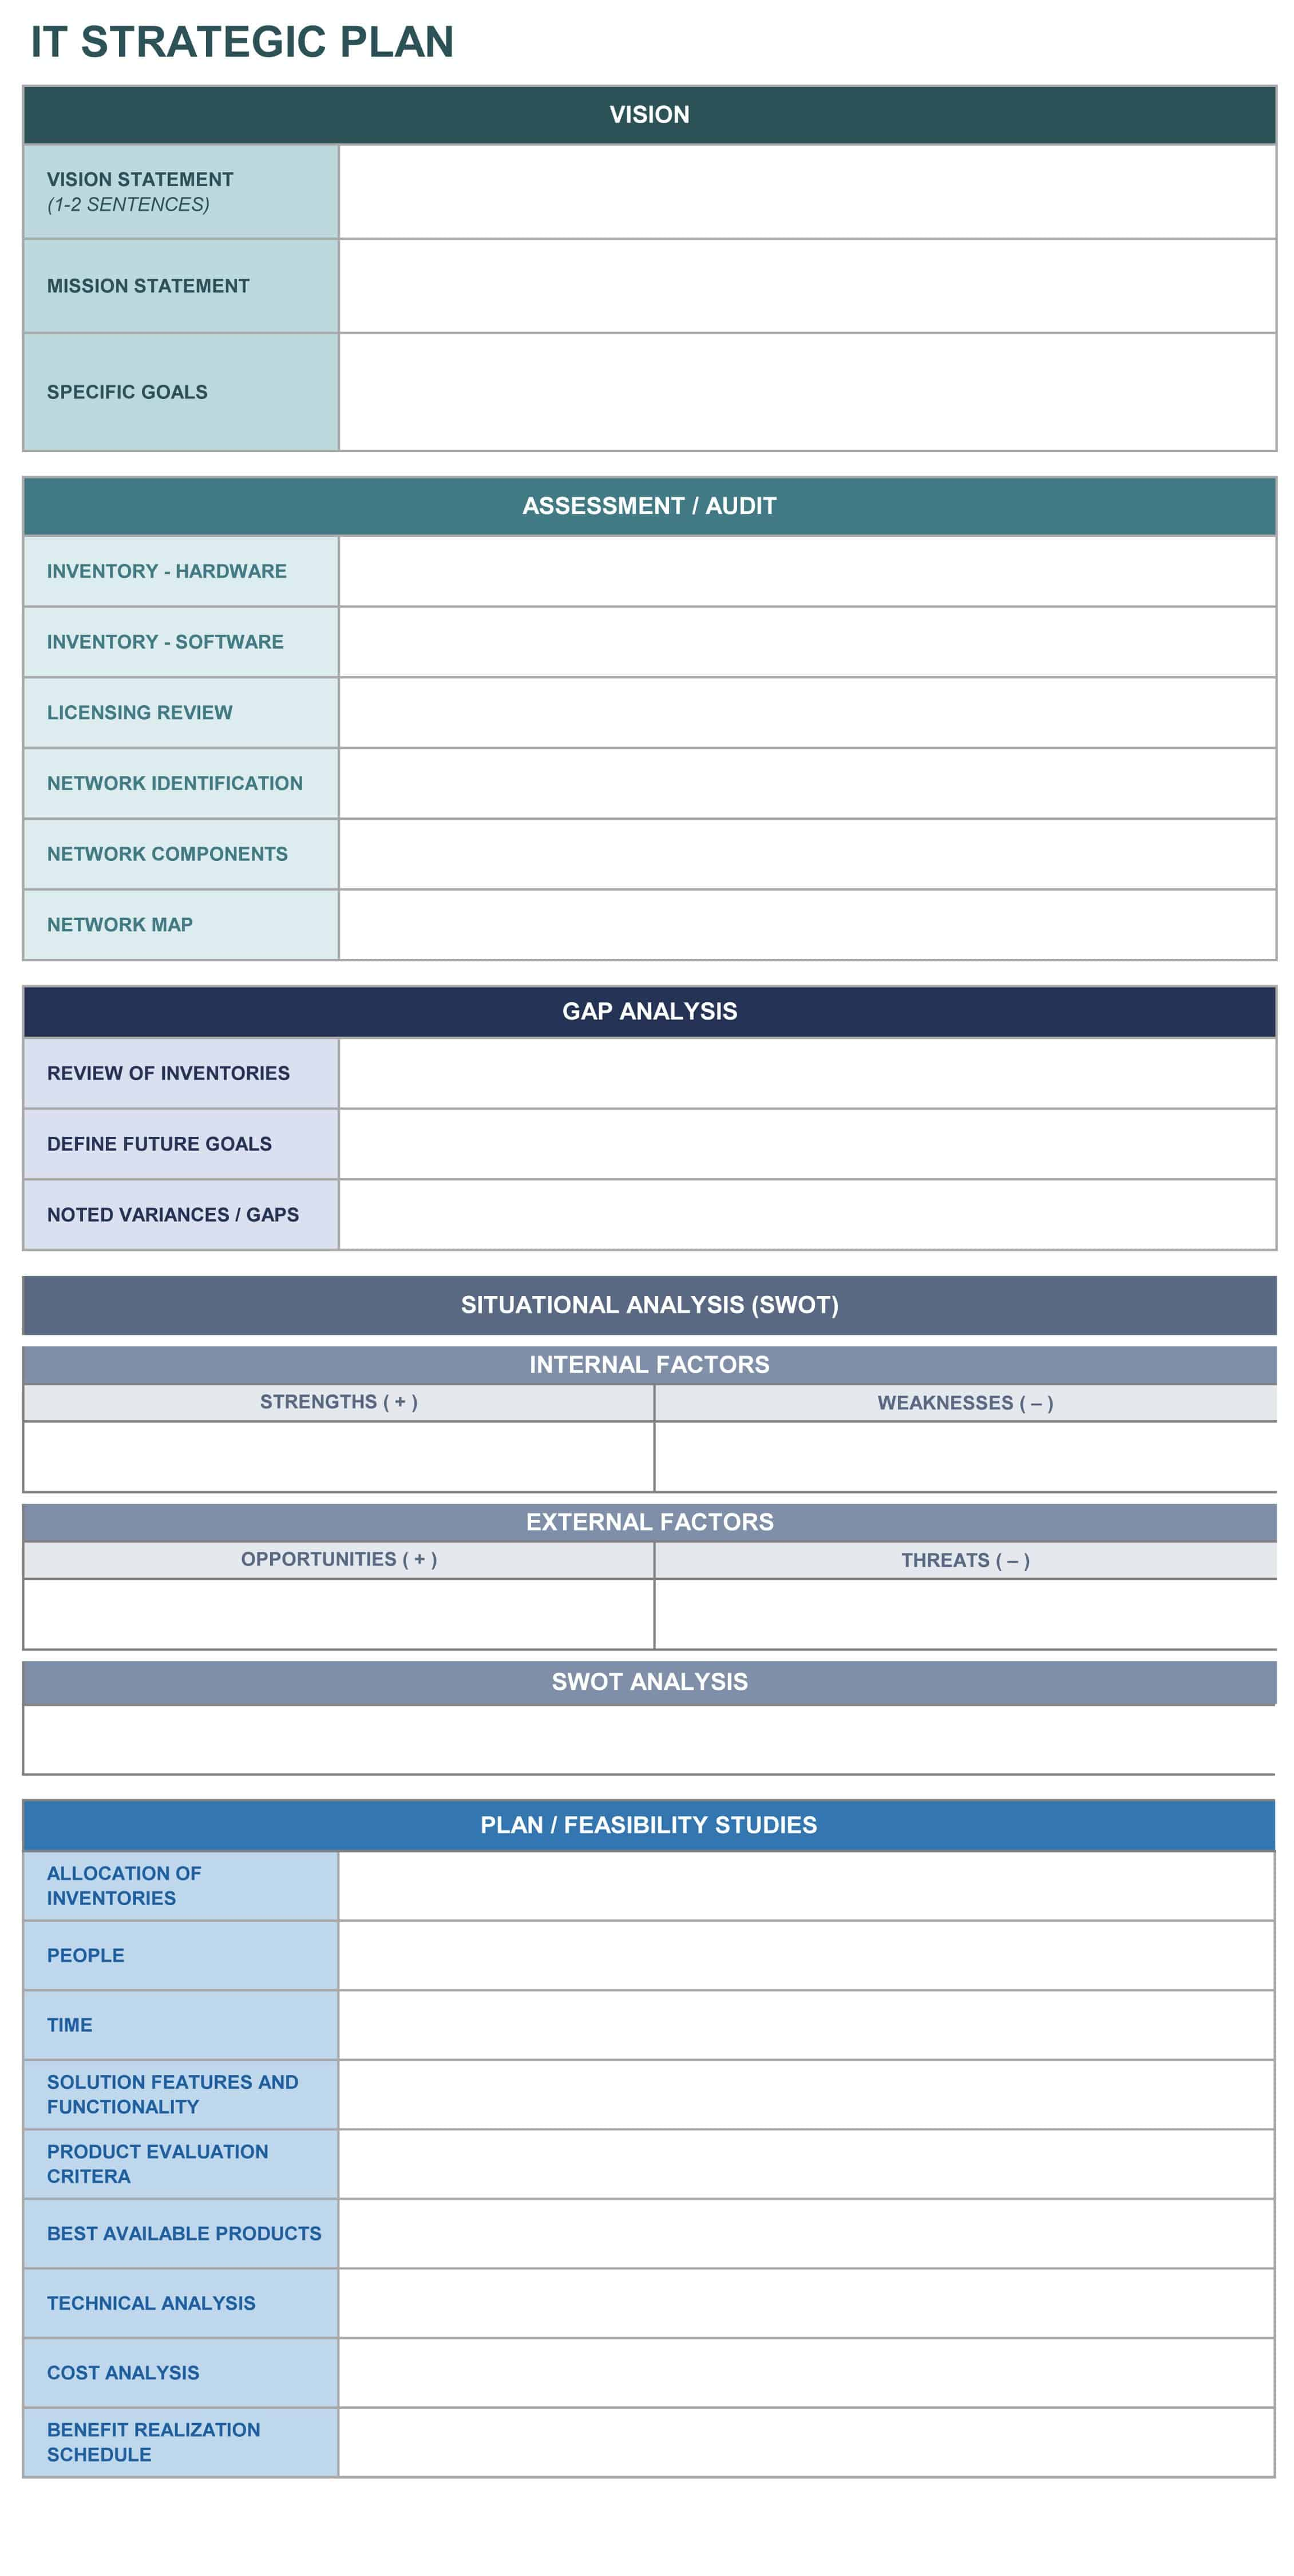 IT strategic plan excel template